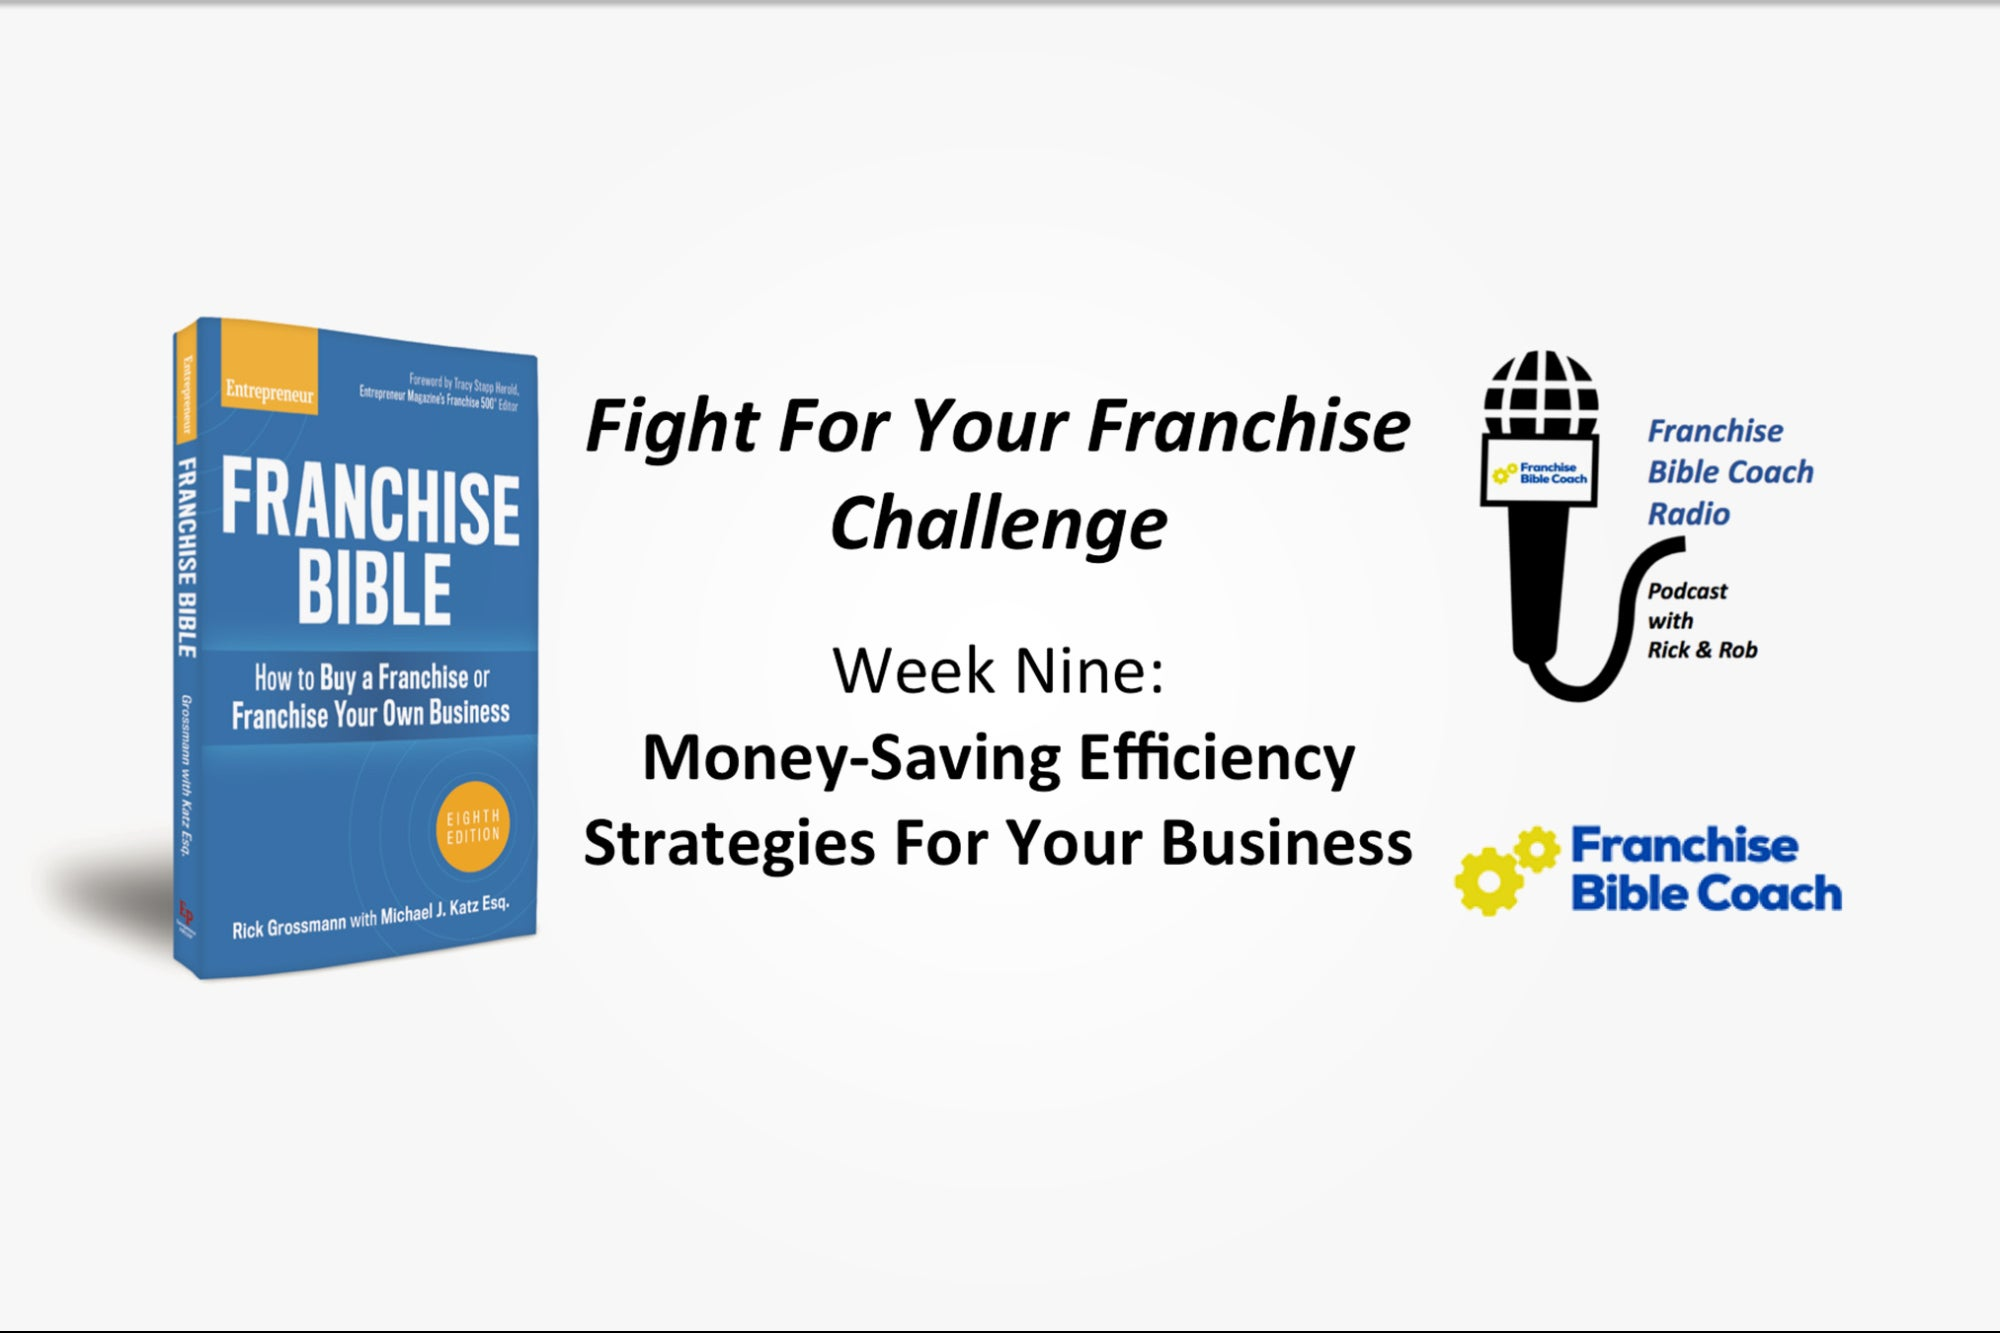 Fight for Your Franchise Challenge, Week 9: Money-Saving Efficiency Strategies